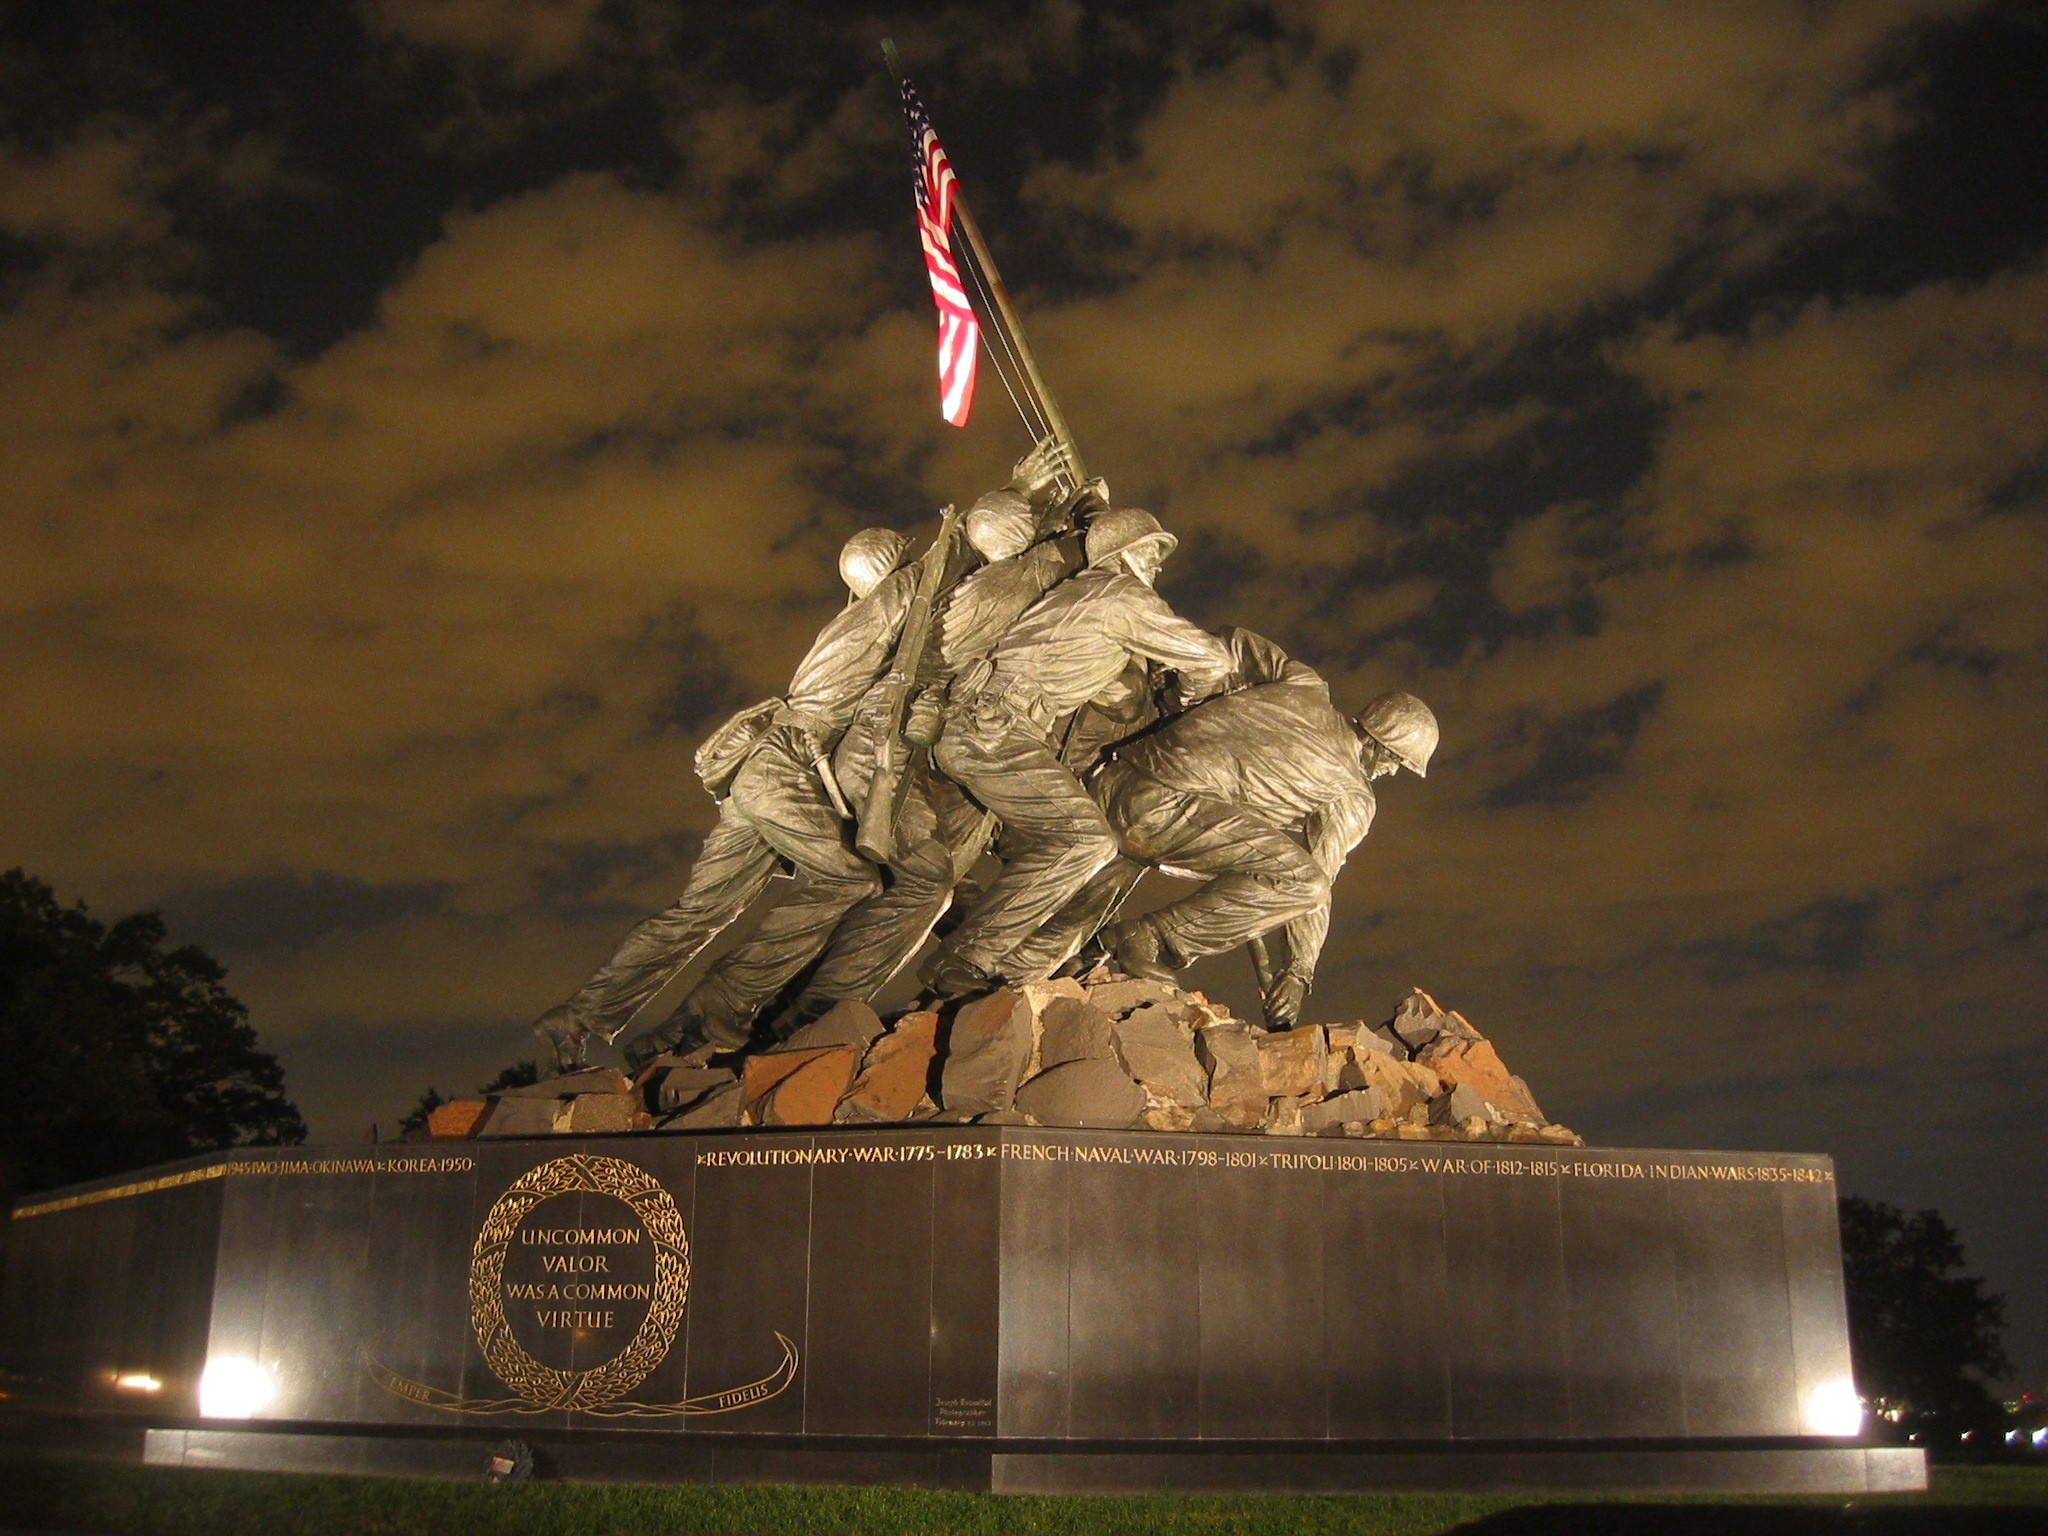 http://commons.wikipedia.org/wiki/File:USMC_War_Memorial_Night.jpg